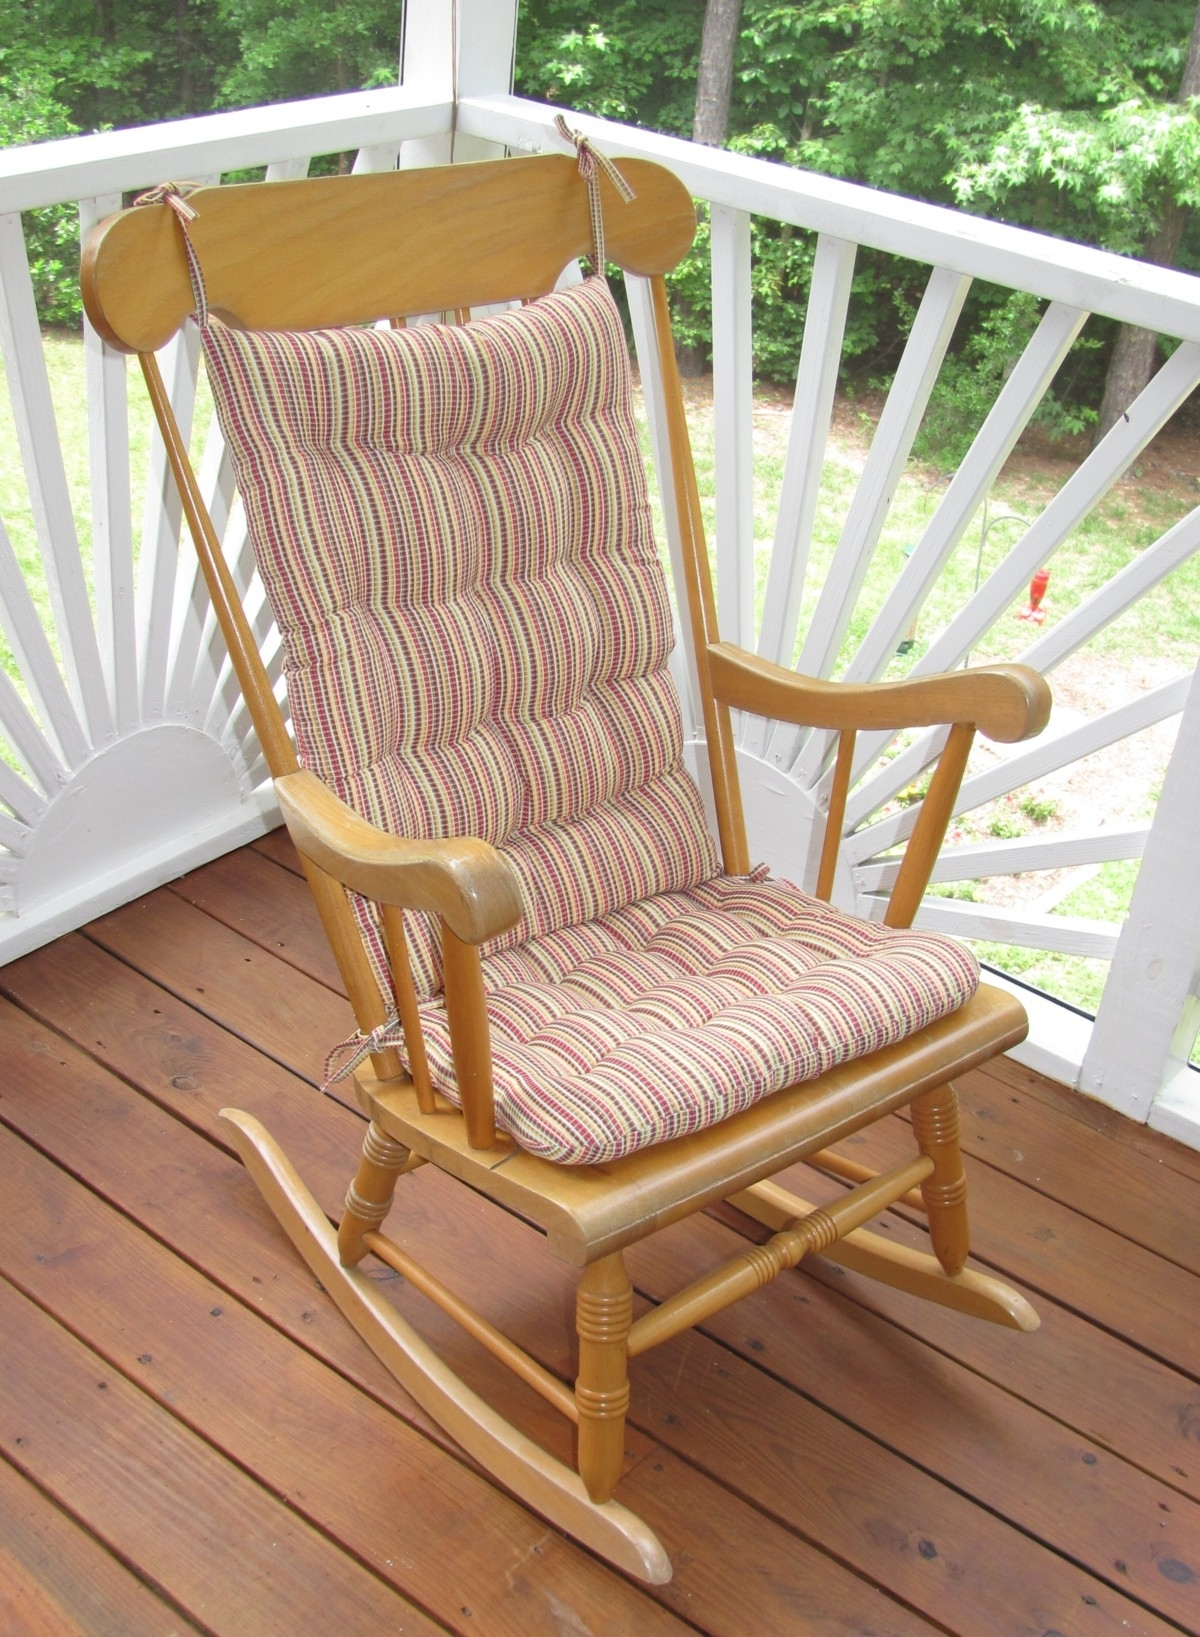 Outdoor Rocking Chairs With Cushions Inside Best And Newest Outdoor Rocking Chair Cushions Type : Beautiful Outdoor Rocking (View 12 of 20)